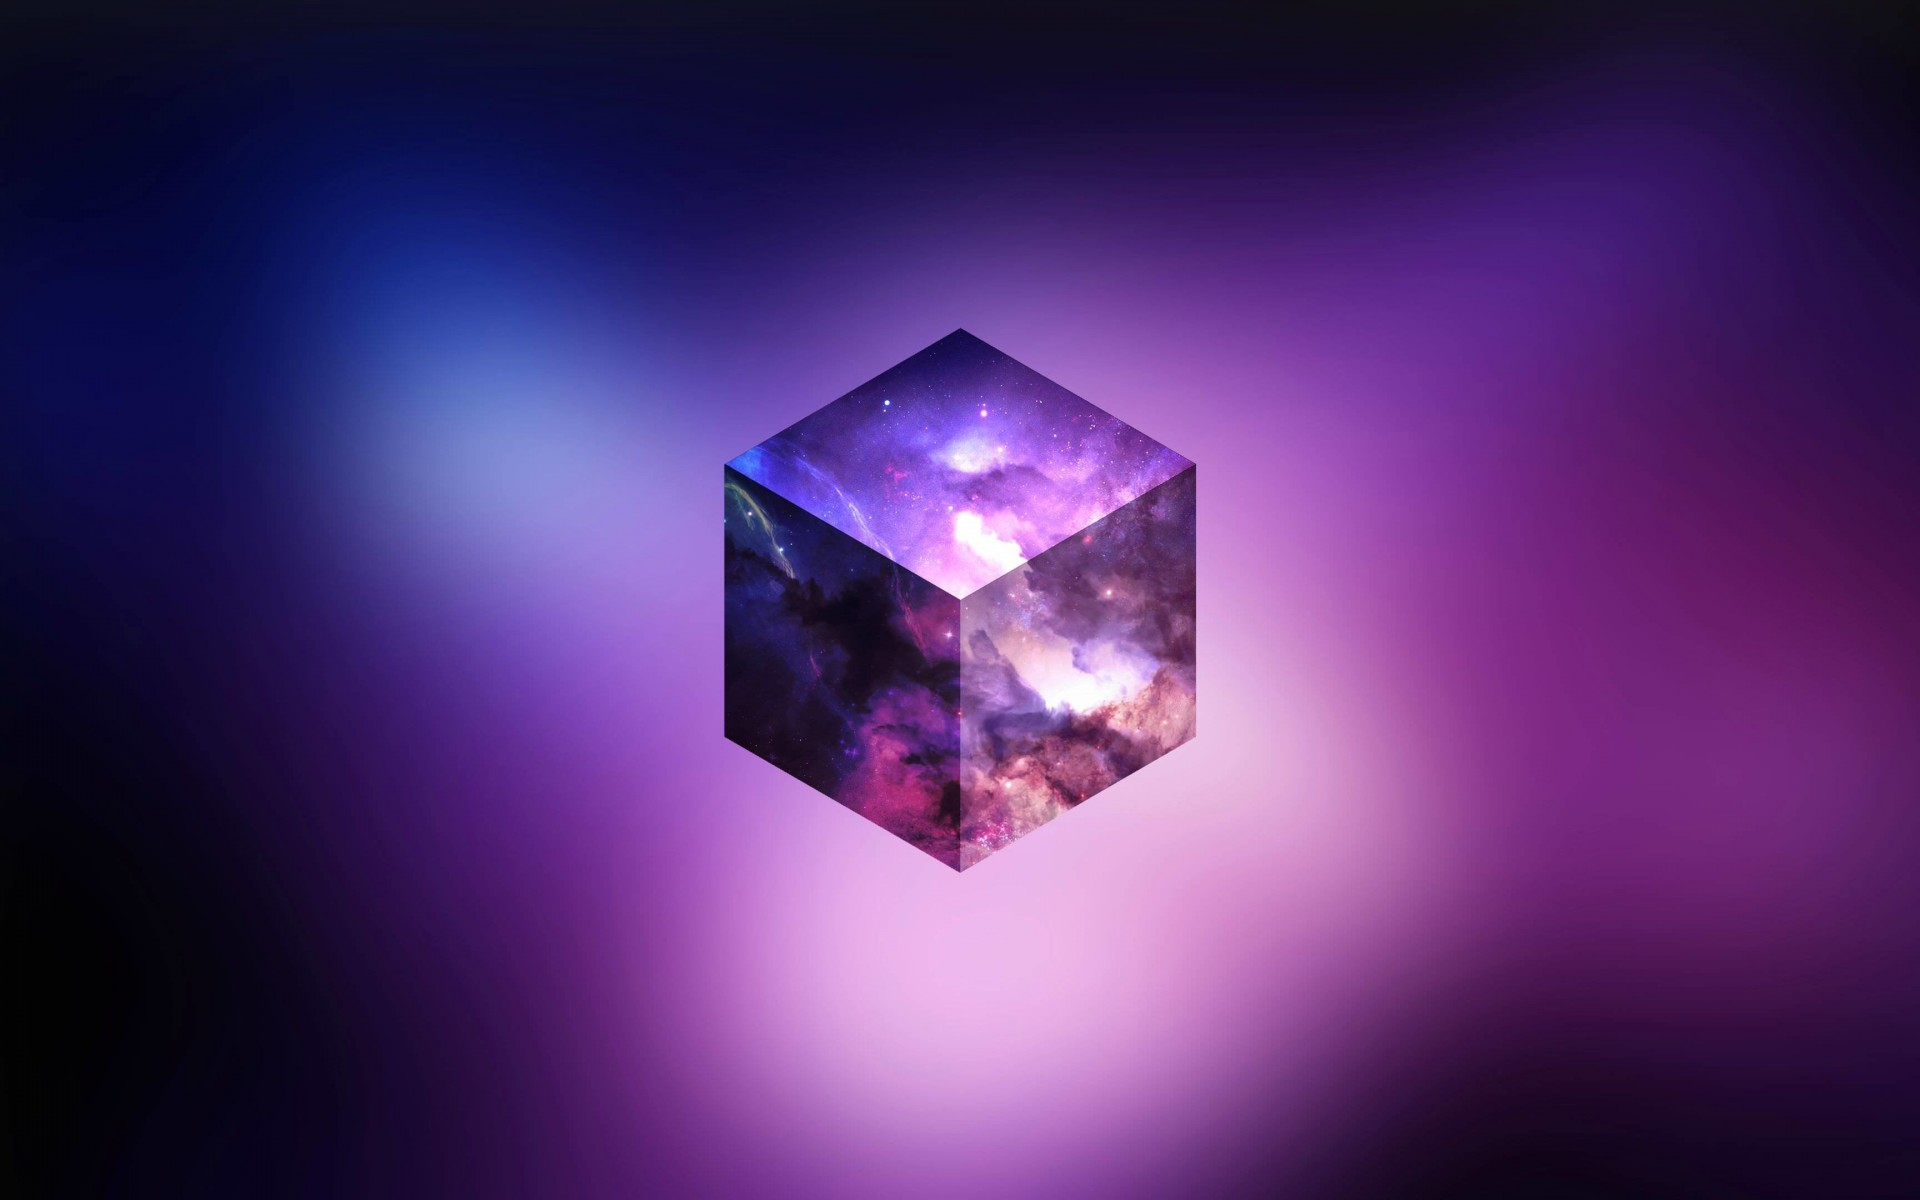 Cosmic Cube Wallpaper for Desktop 1920x1200